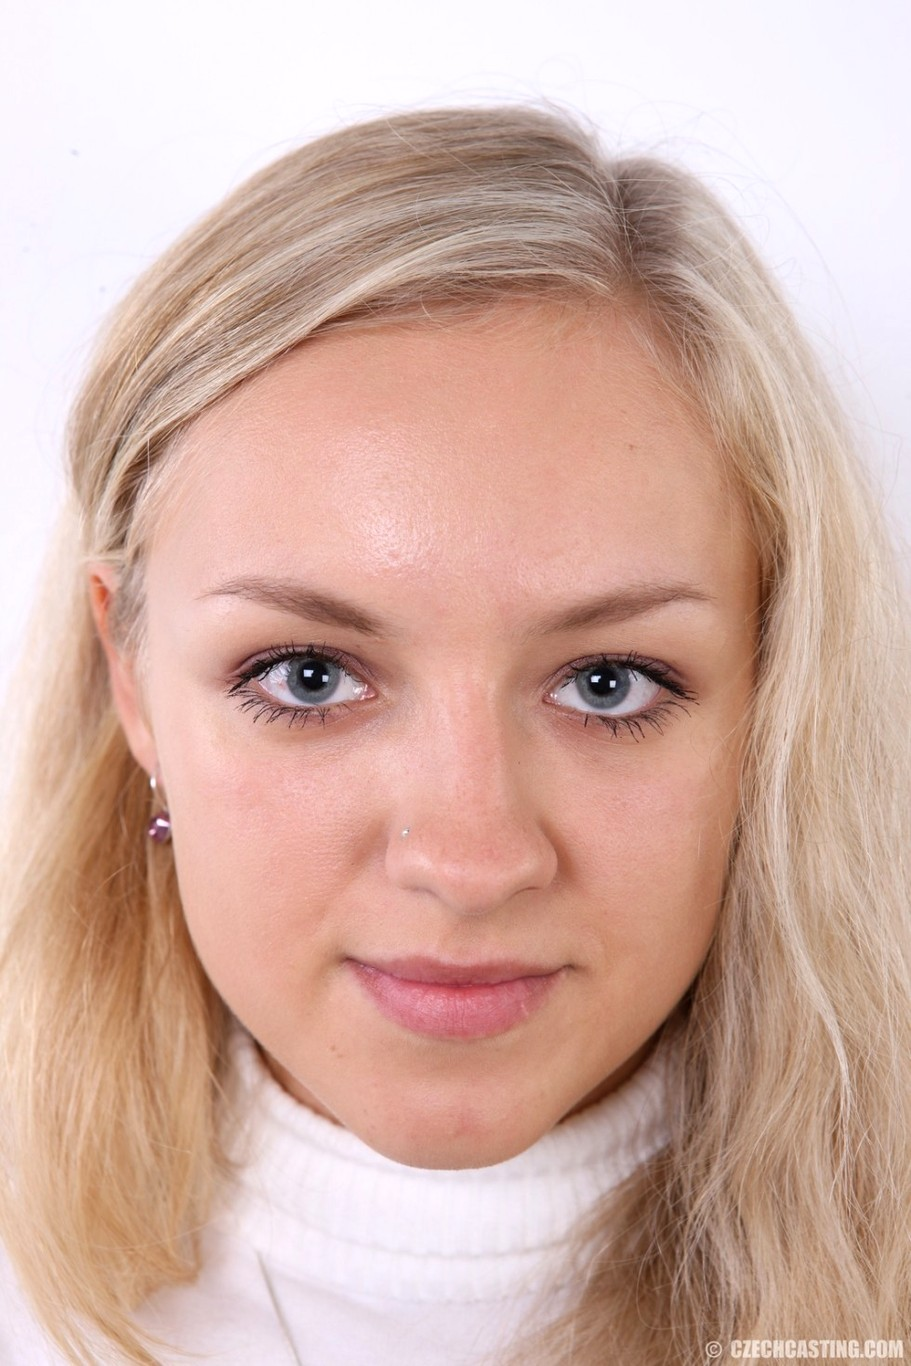 Married milf mona wales innocent girl turned slut - 3 part 4